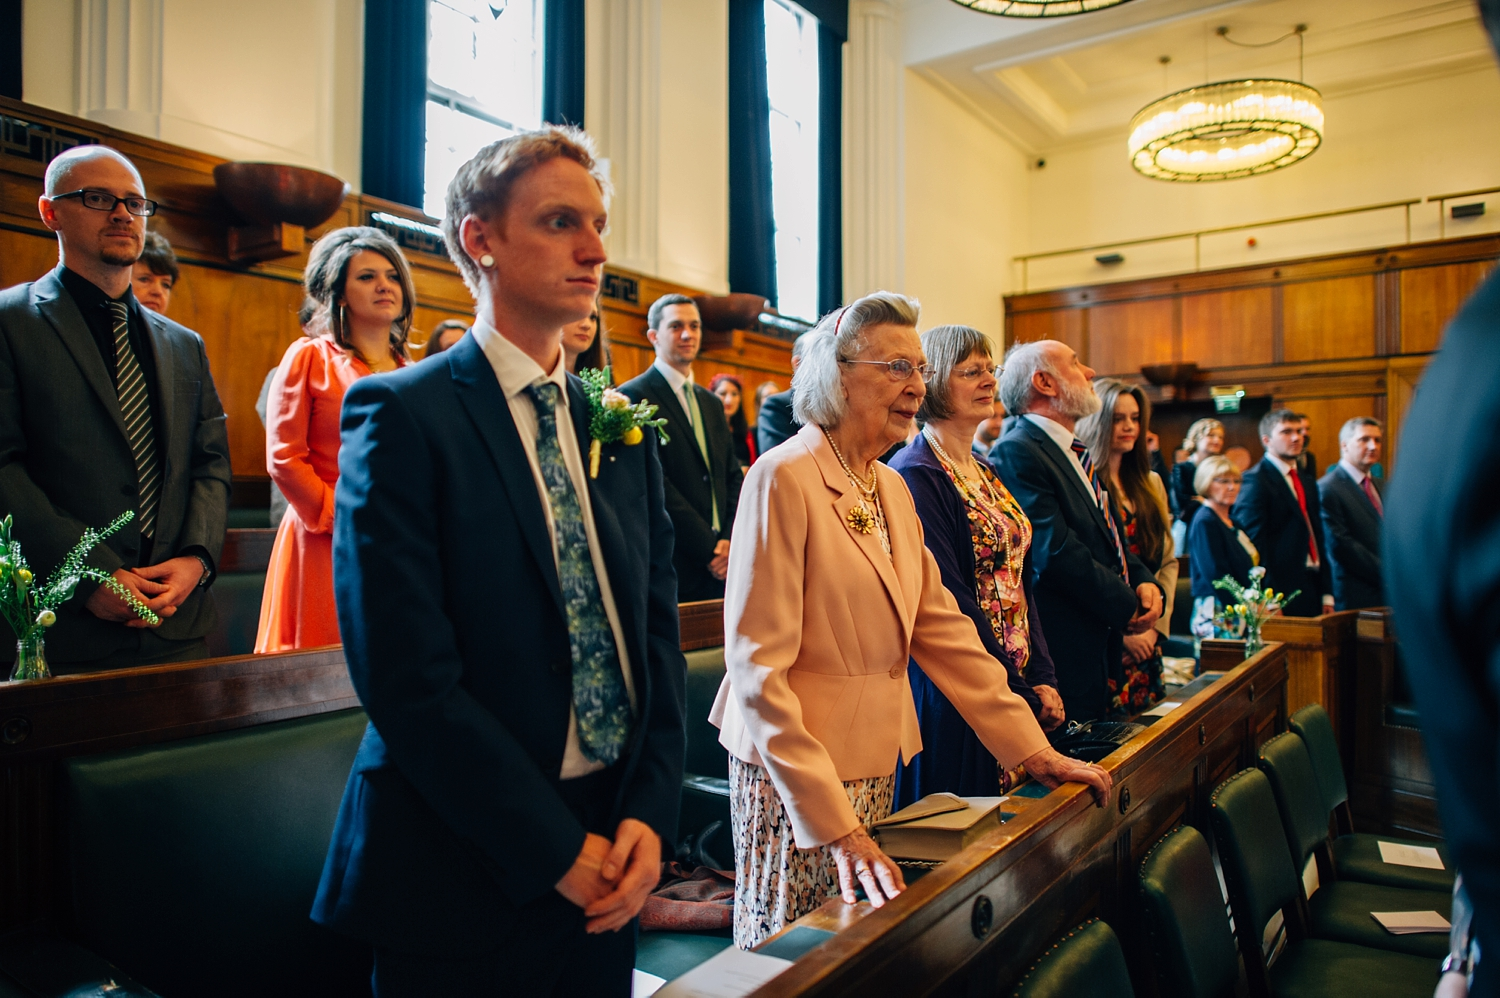 0042-lisa-devine-alternative-wedding-photography-london-hackney-dalston-london-photography-townhall-hotel.JPG